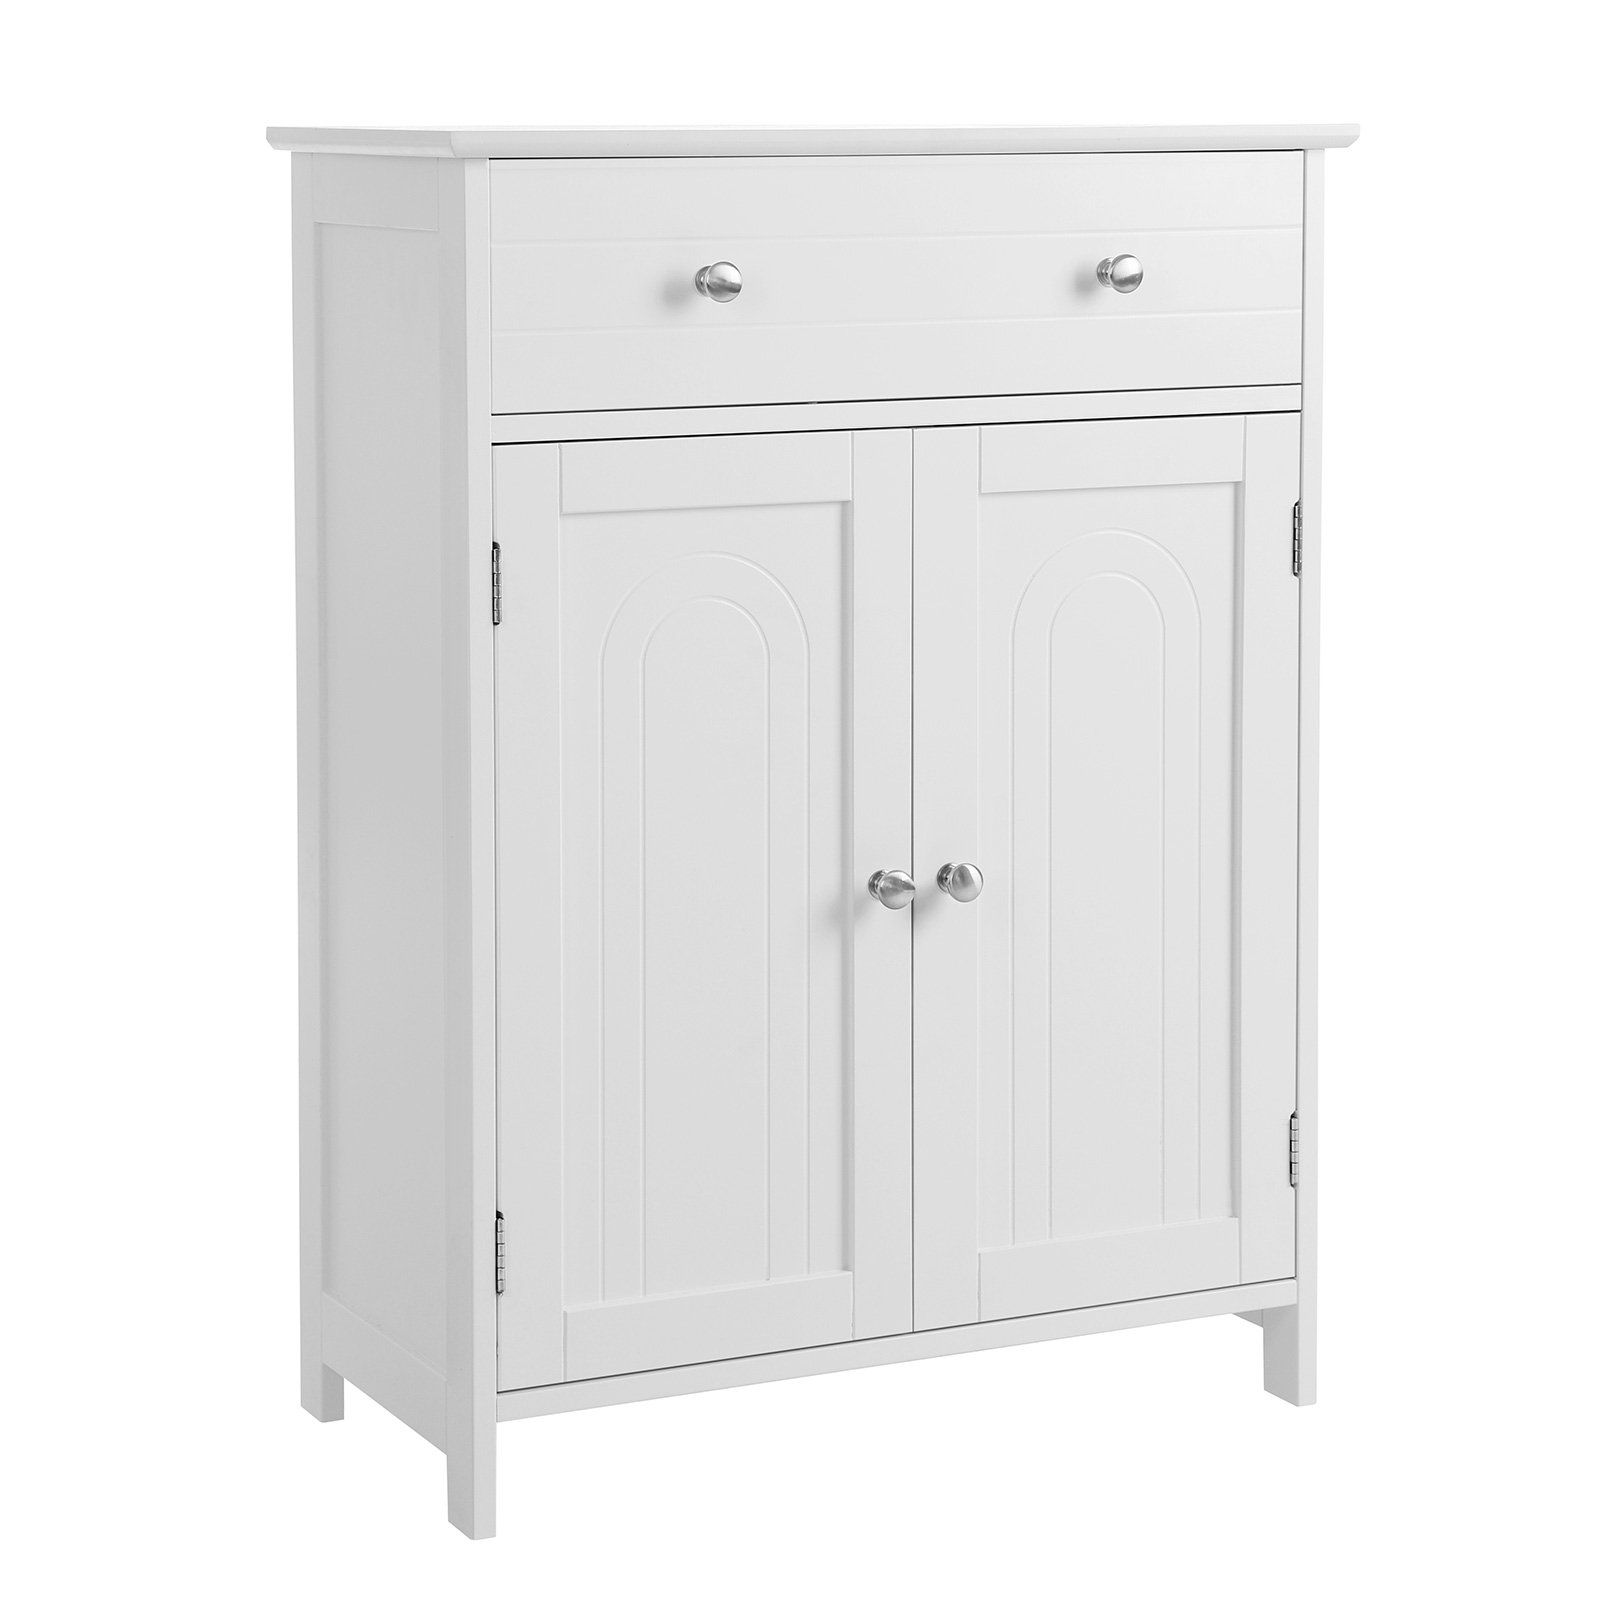 SONGMICS Free Standing Bathroom Cabinet with Large Drawer and Adjustable Shelf, Kitchen Cupboard, Wooden Entryway Storage Cabinet White, 23.6''L x 11.8''W x 31.5''H, UBBC61WT